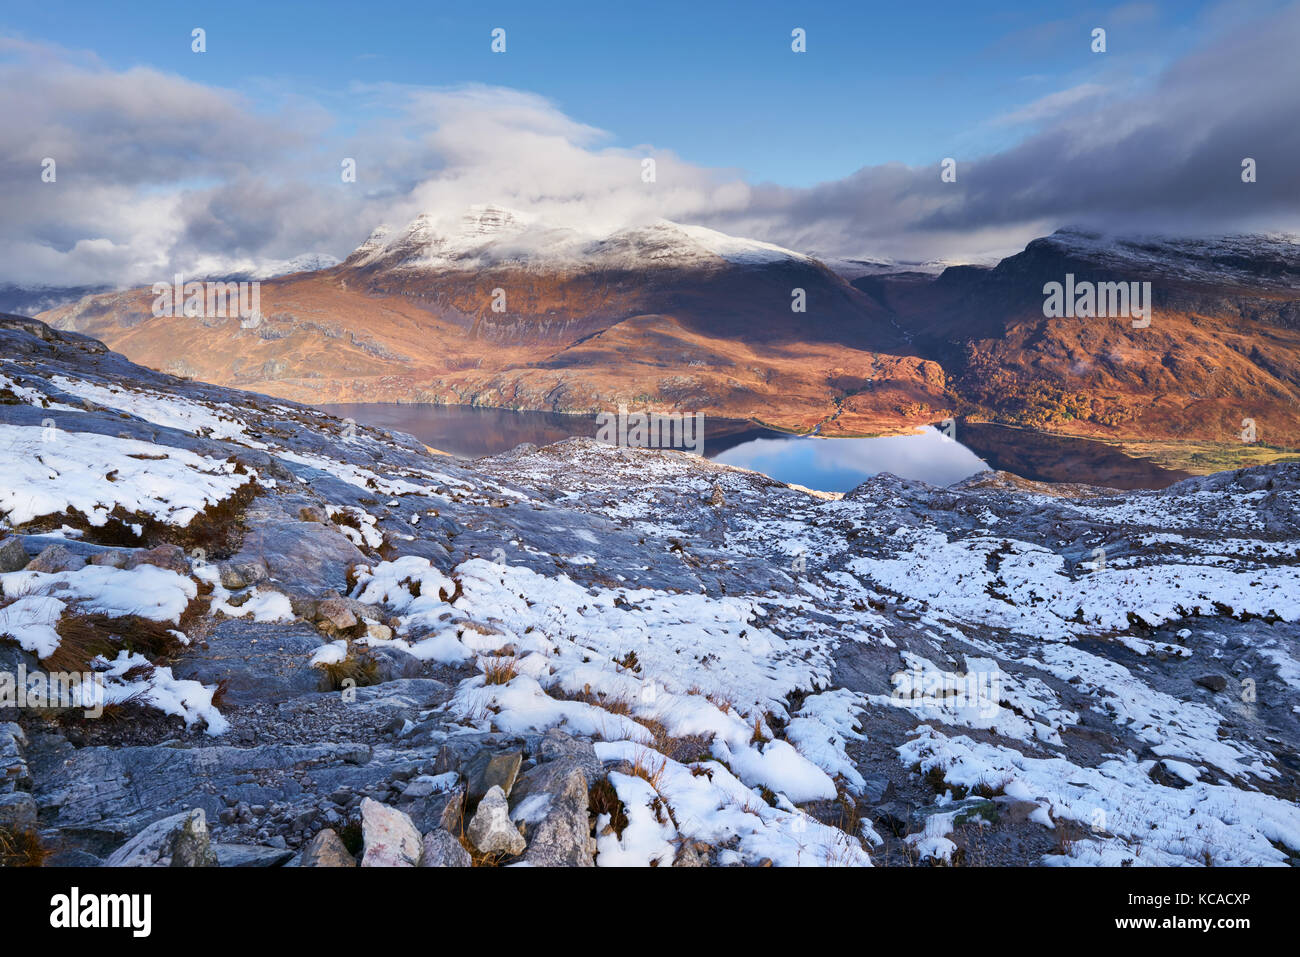 The summits of Slioch and Beinn a Mhuinidh over Loch Maree in the Scottish Highlands, Scotland, UK. - Stock Image